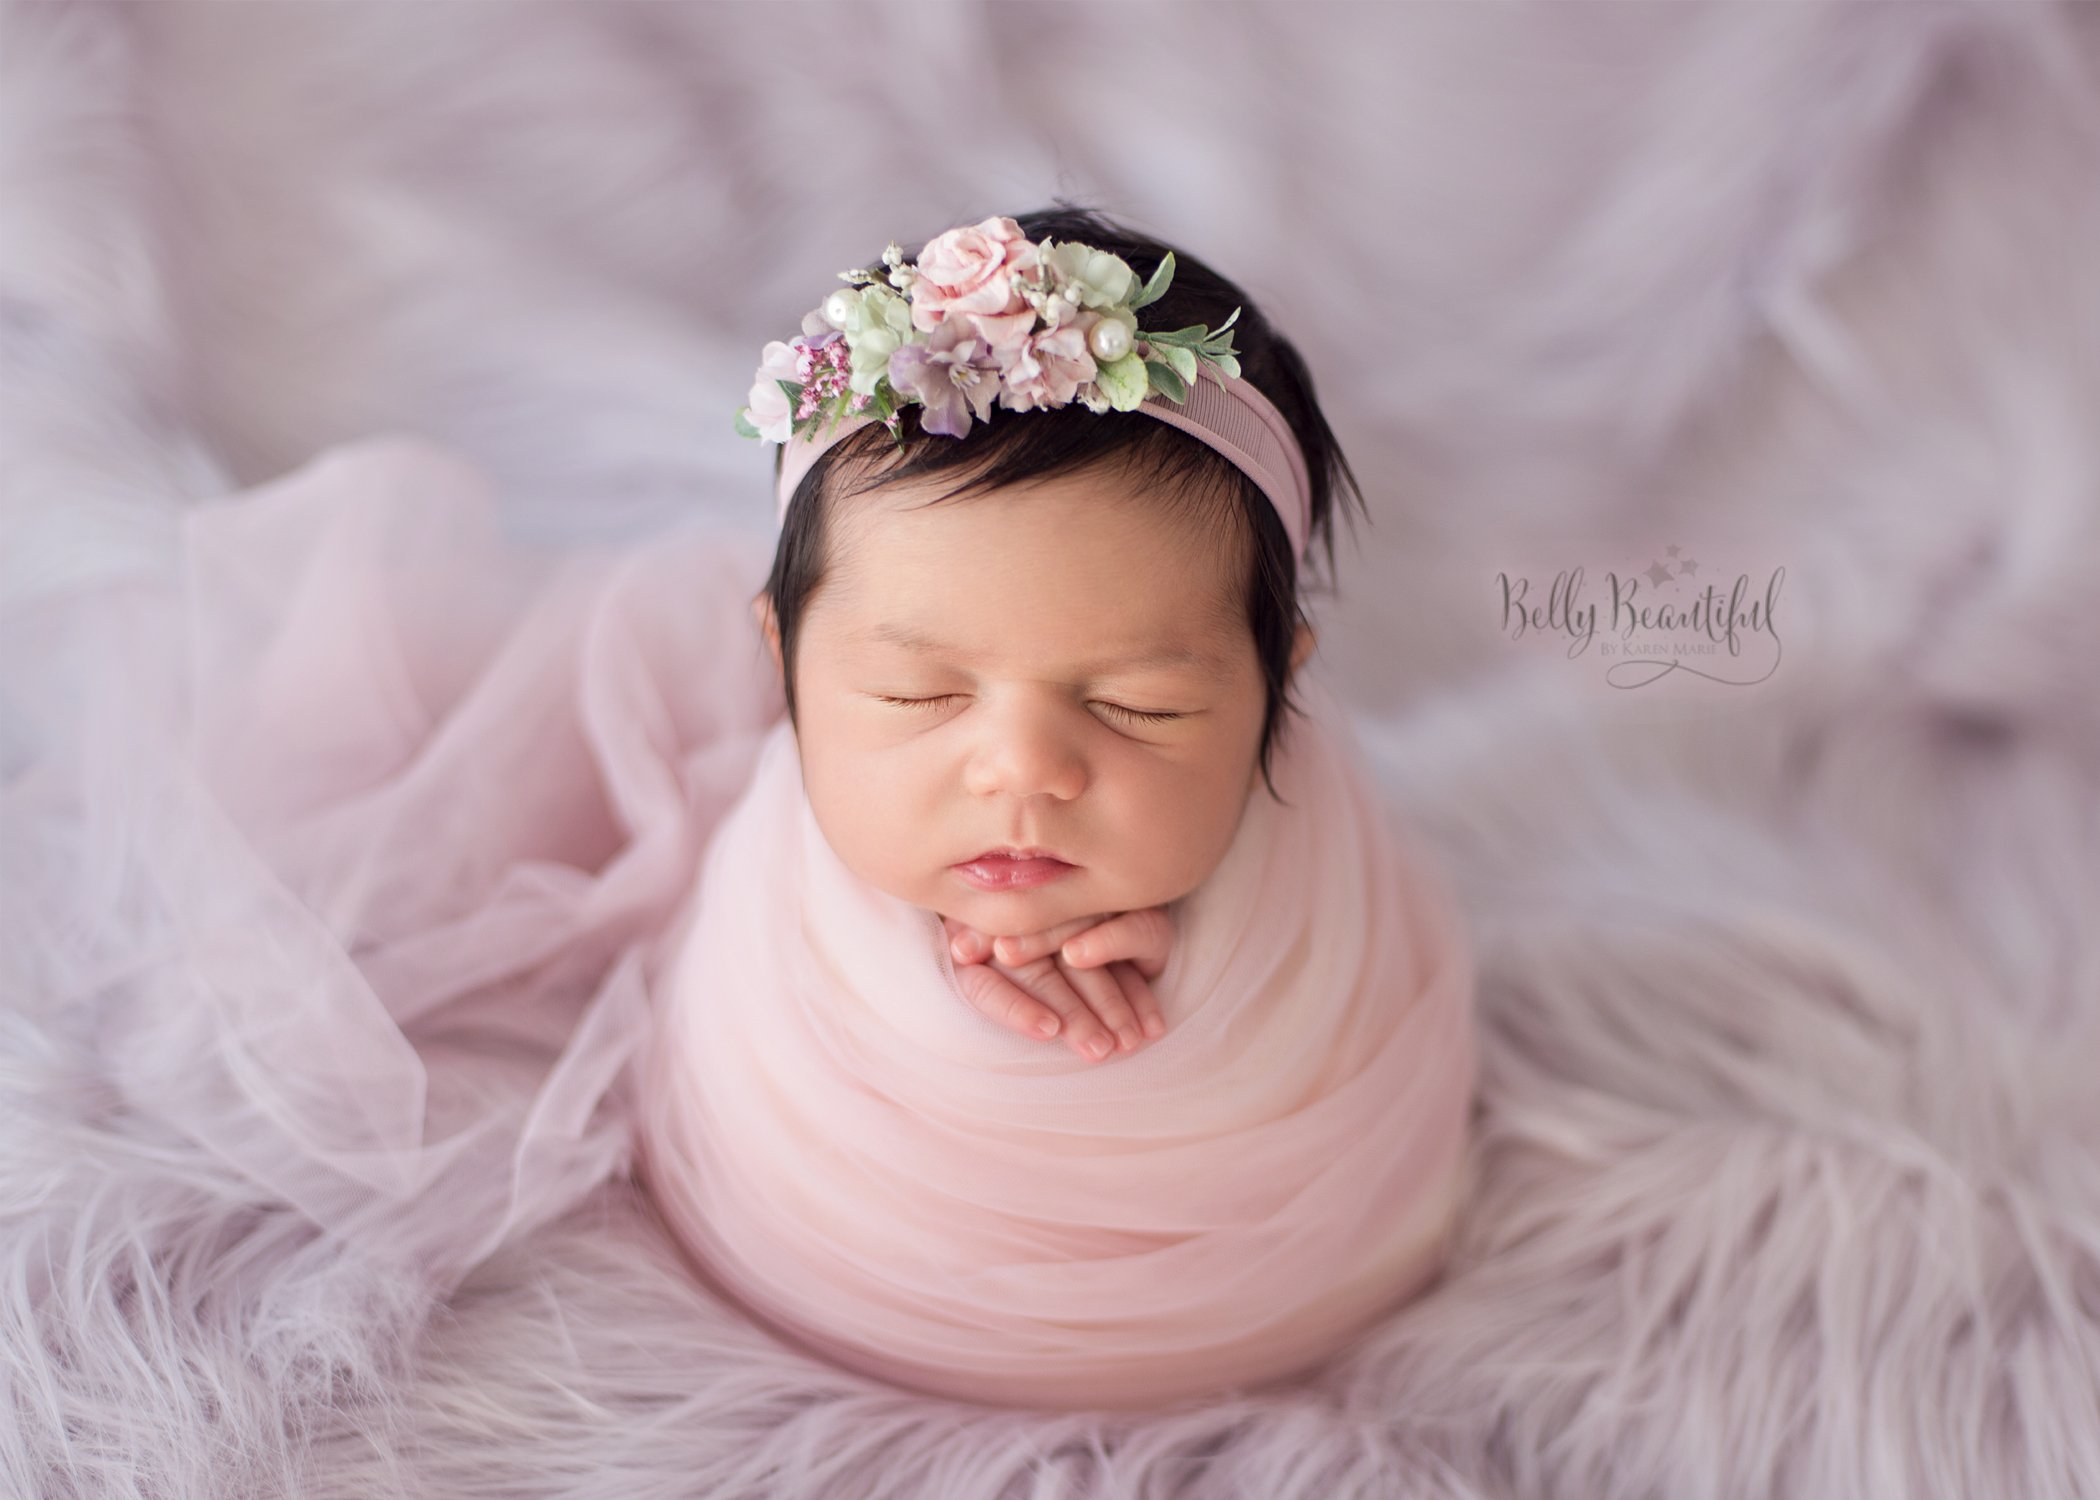 newborn mesh wrap blush belly beautiful web res studio 2018 favorite sew trendy image